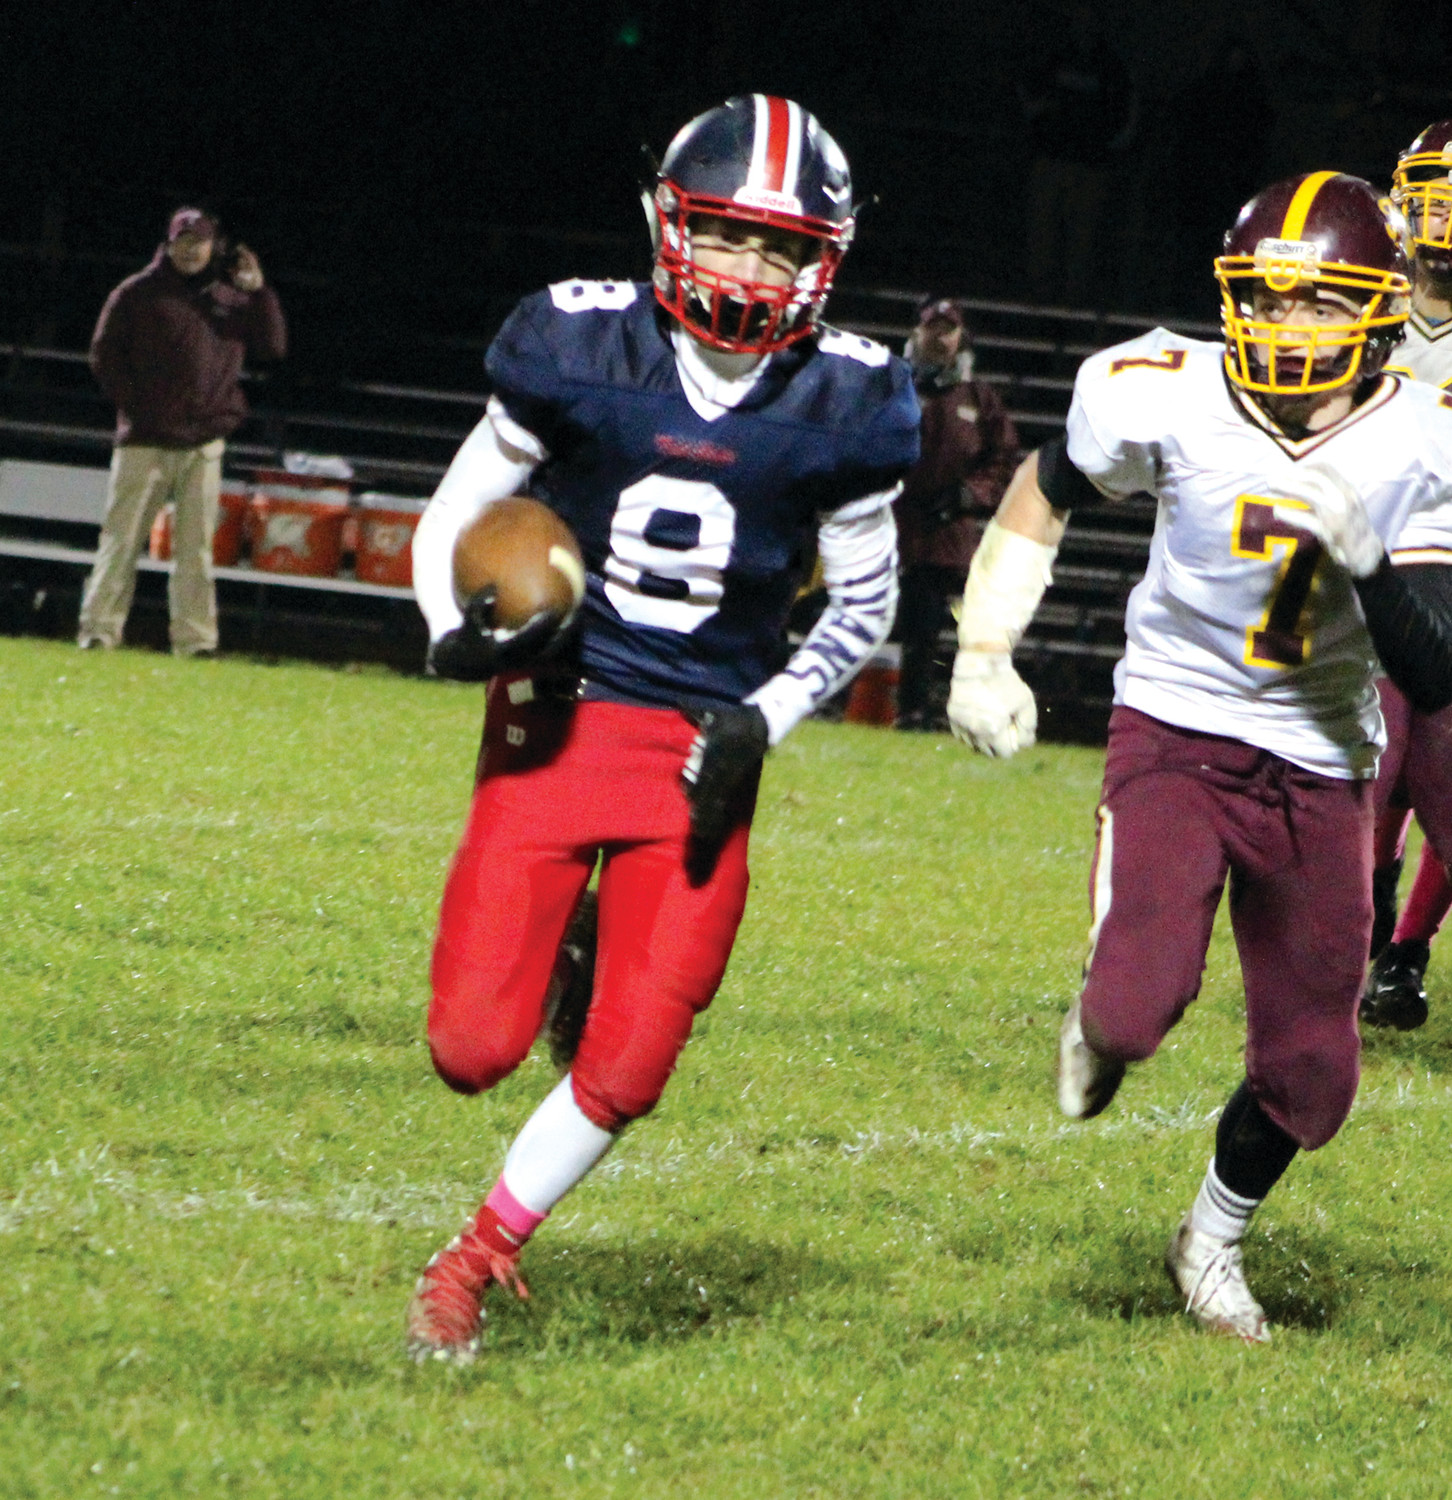 ON THE MOVE: Toll Gate's Chris Souza picks up some yards.